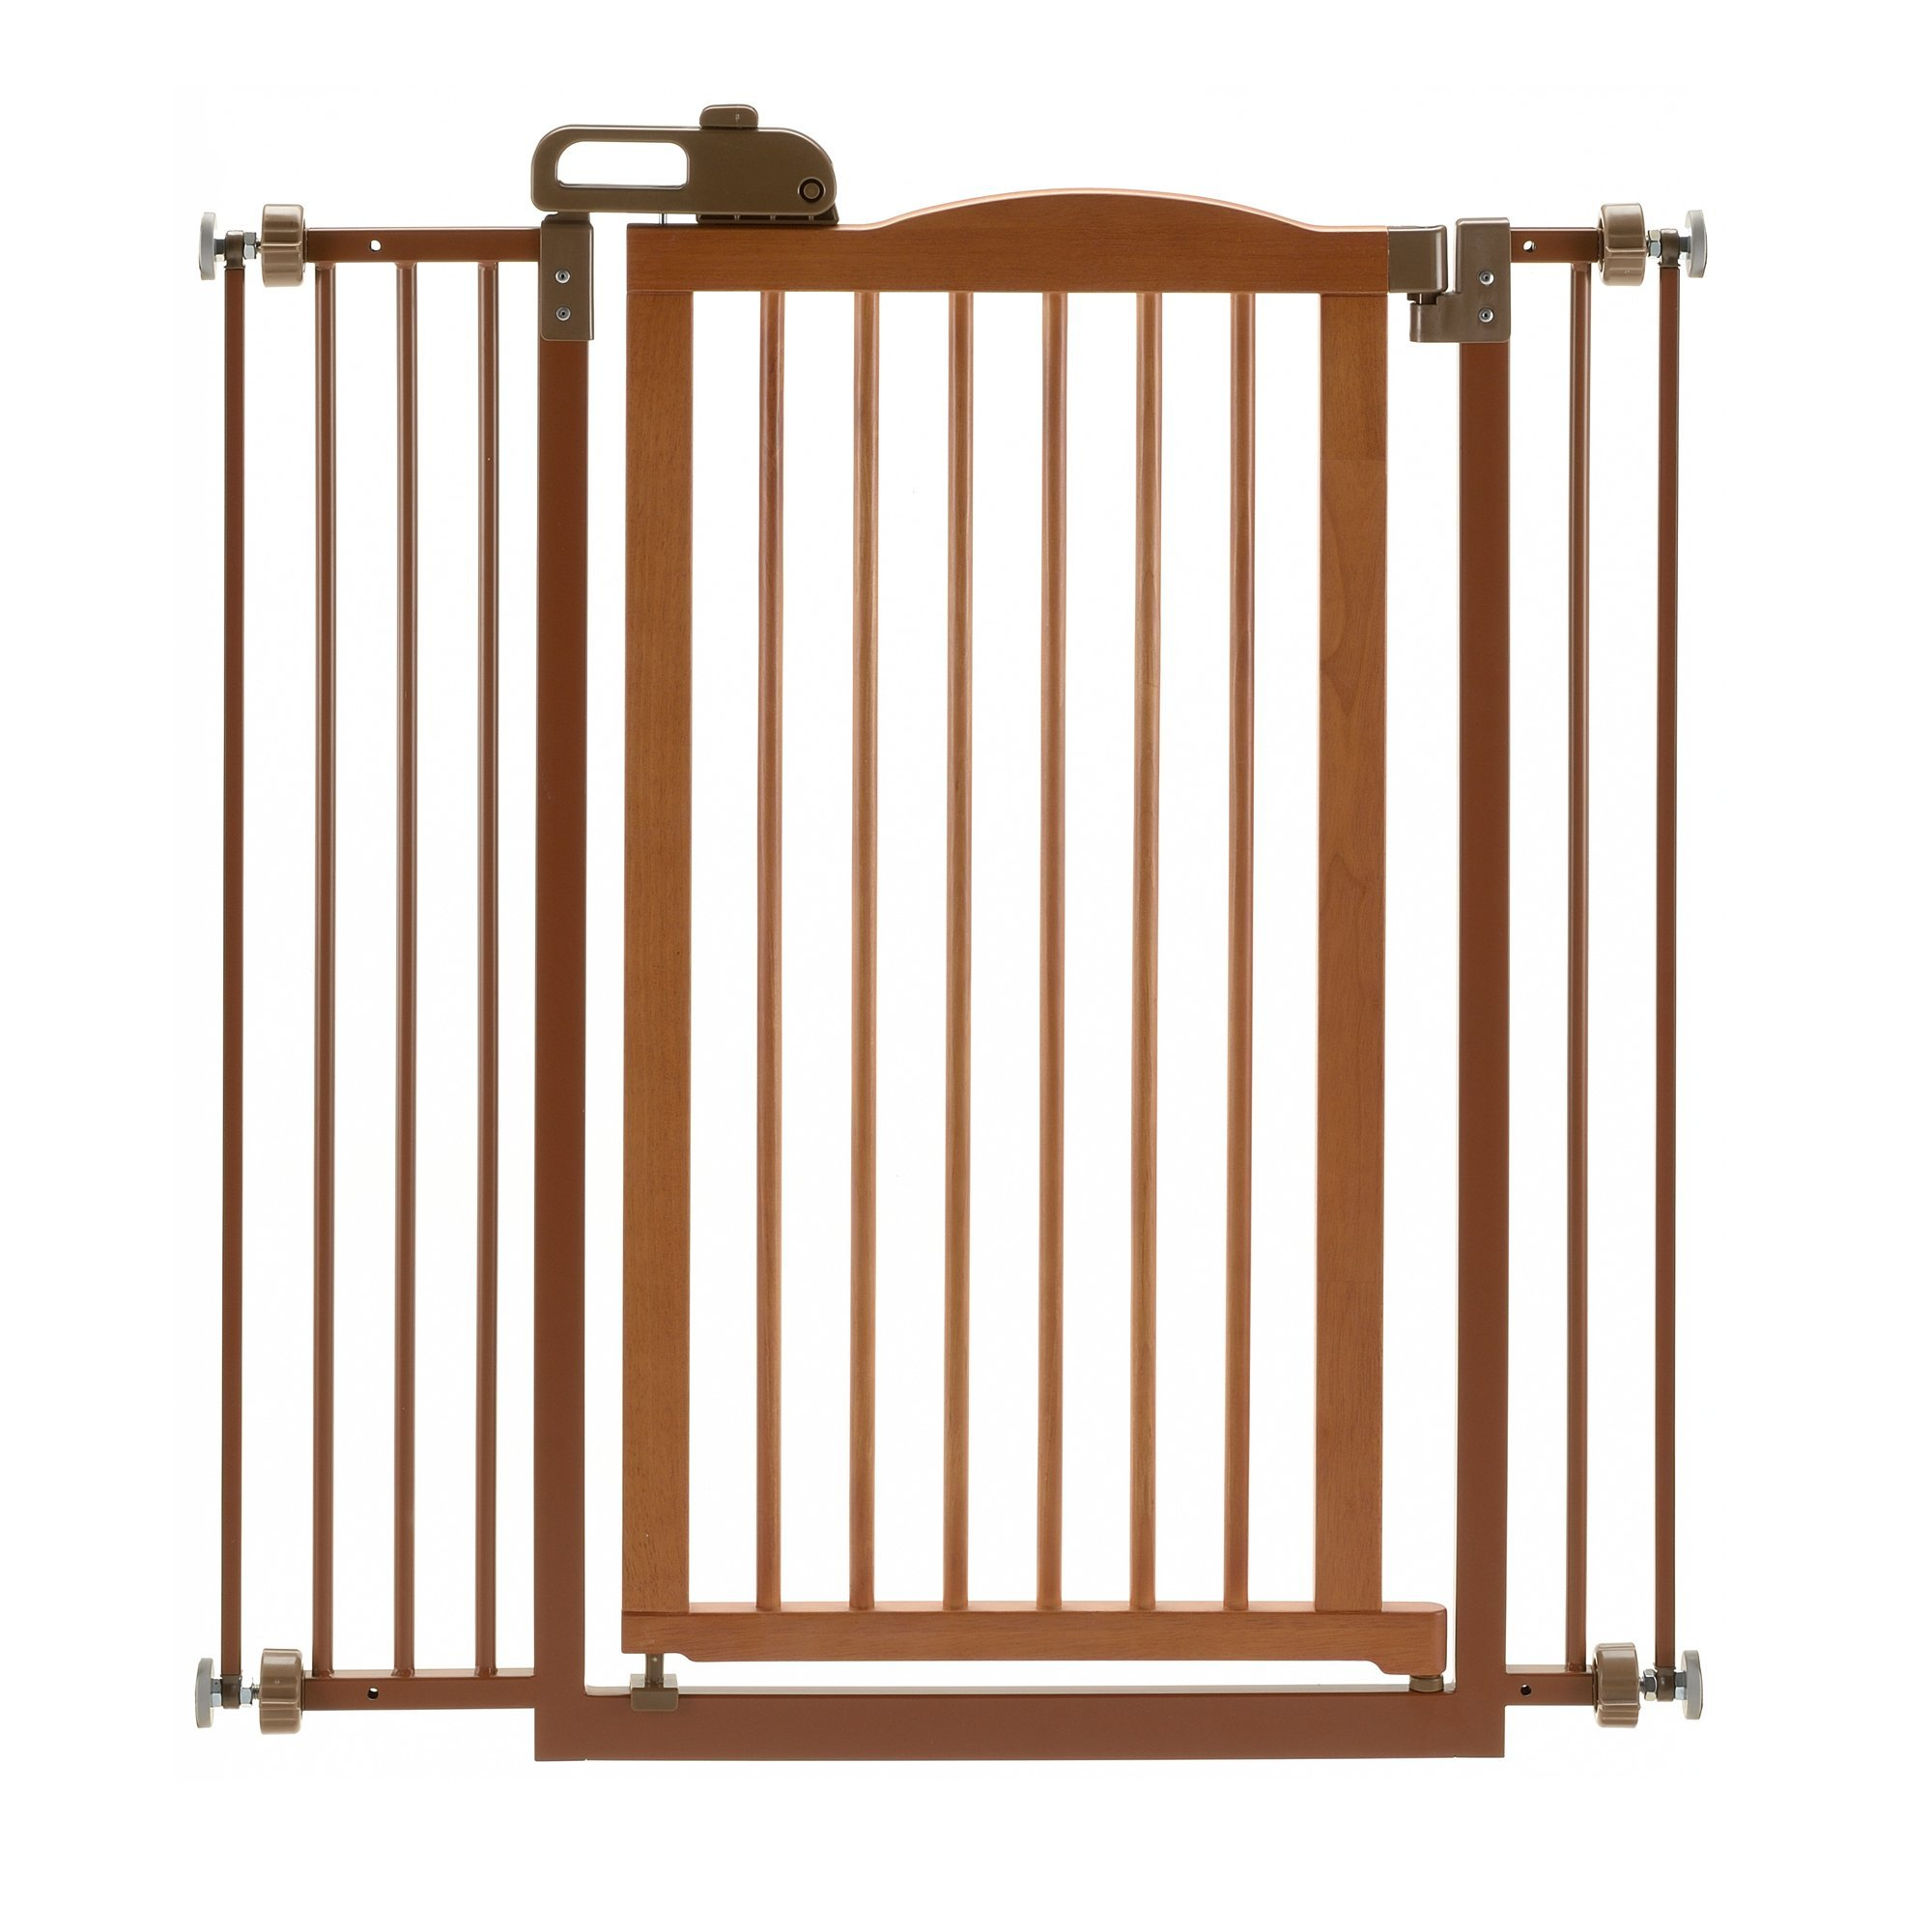 Richell 94930 Pet Kennels and Gates